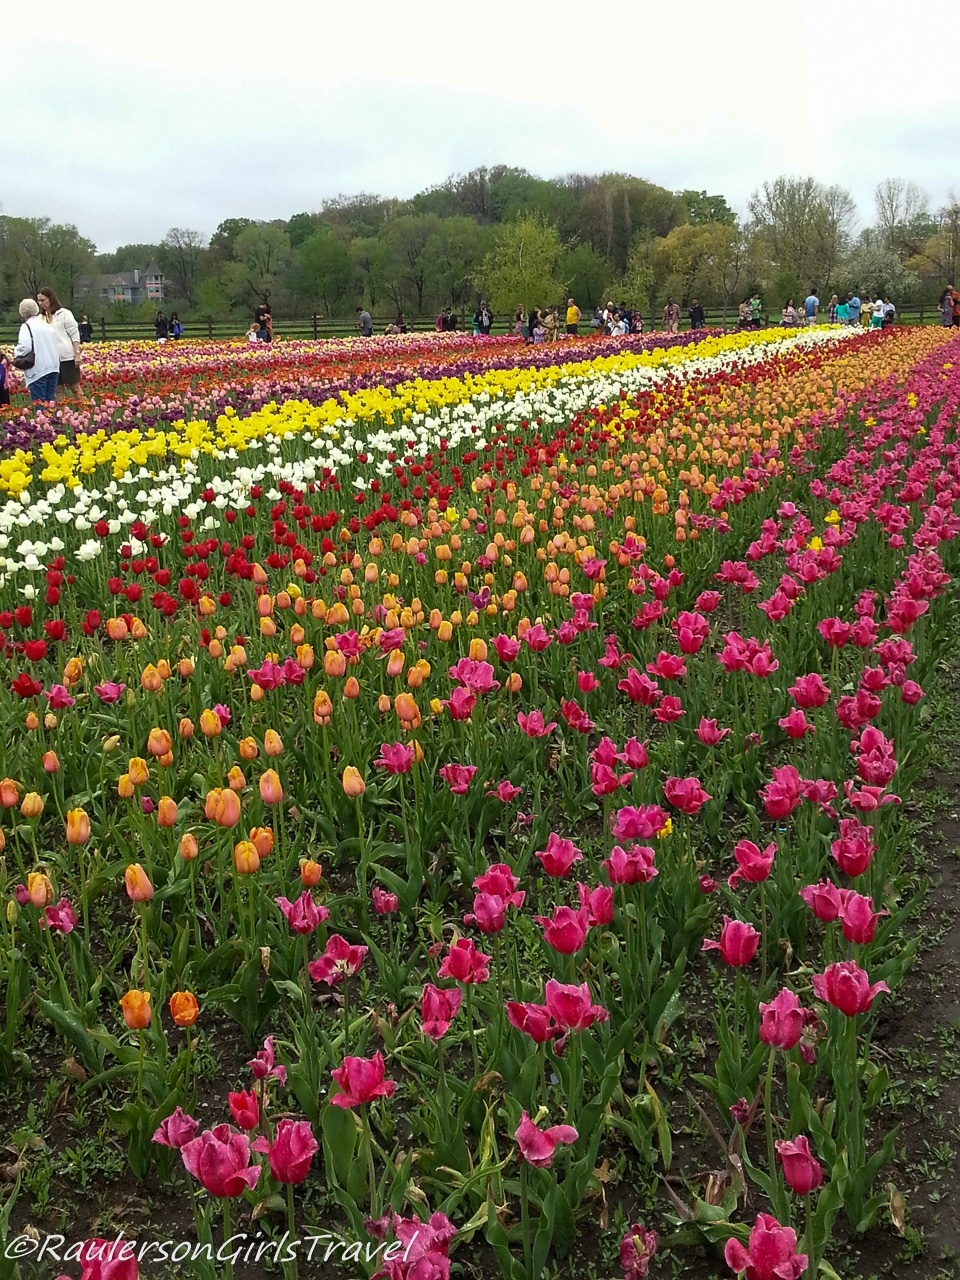 Rows of colorful tulips at Windmill Island Gardens